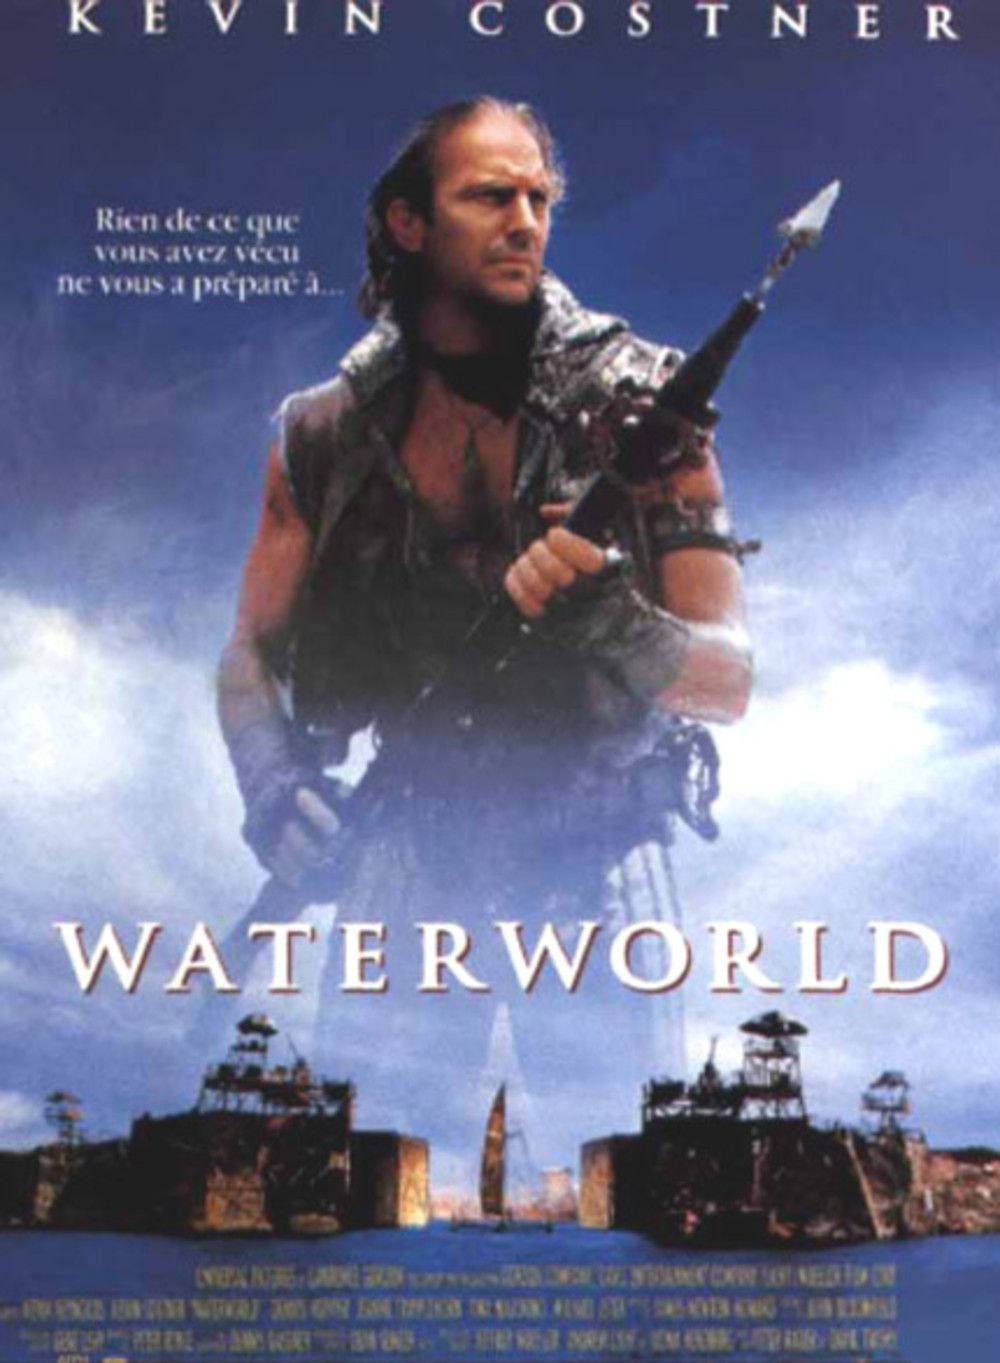 affiche waterworld classics pinterest movies streaming movies and film. Black Bedroom Furniture Sets. Home Design Ideas